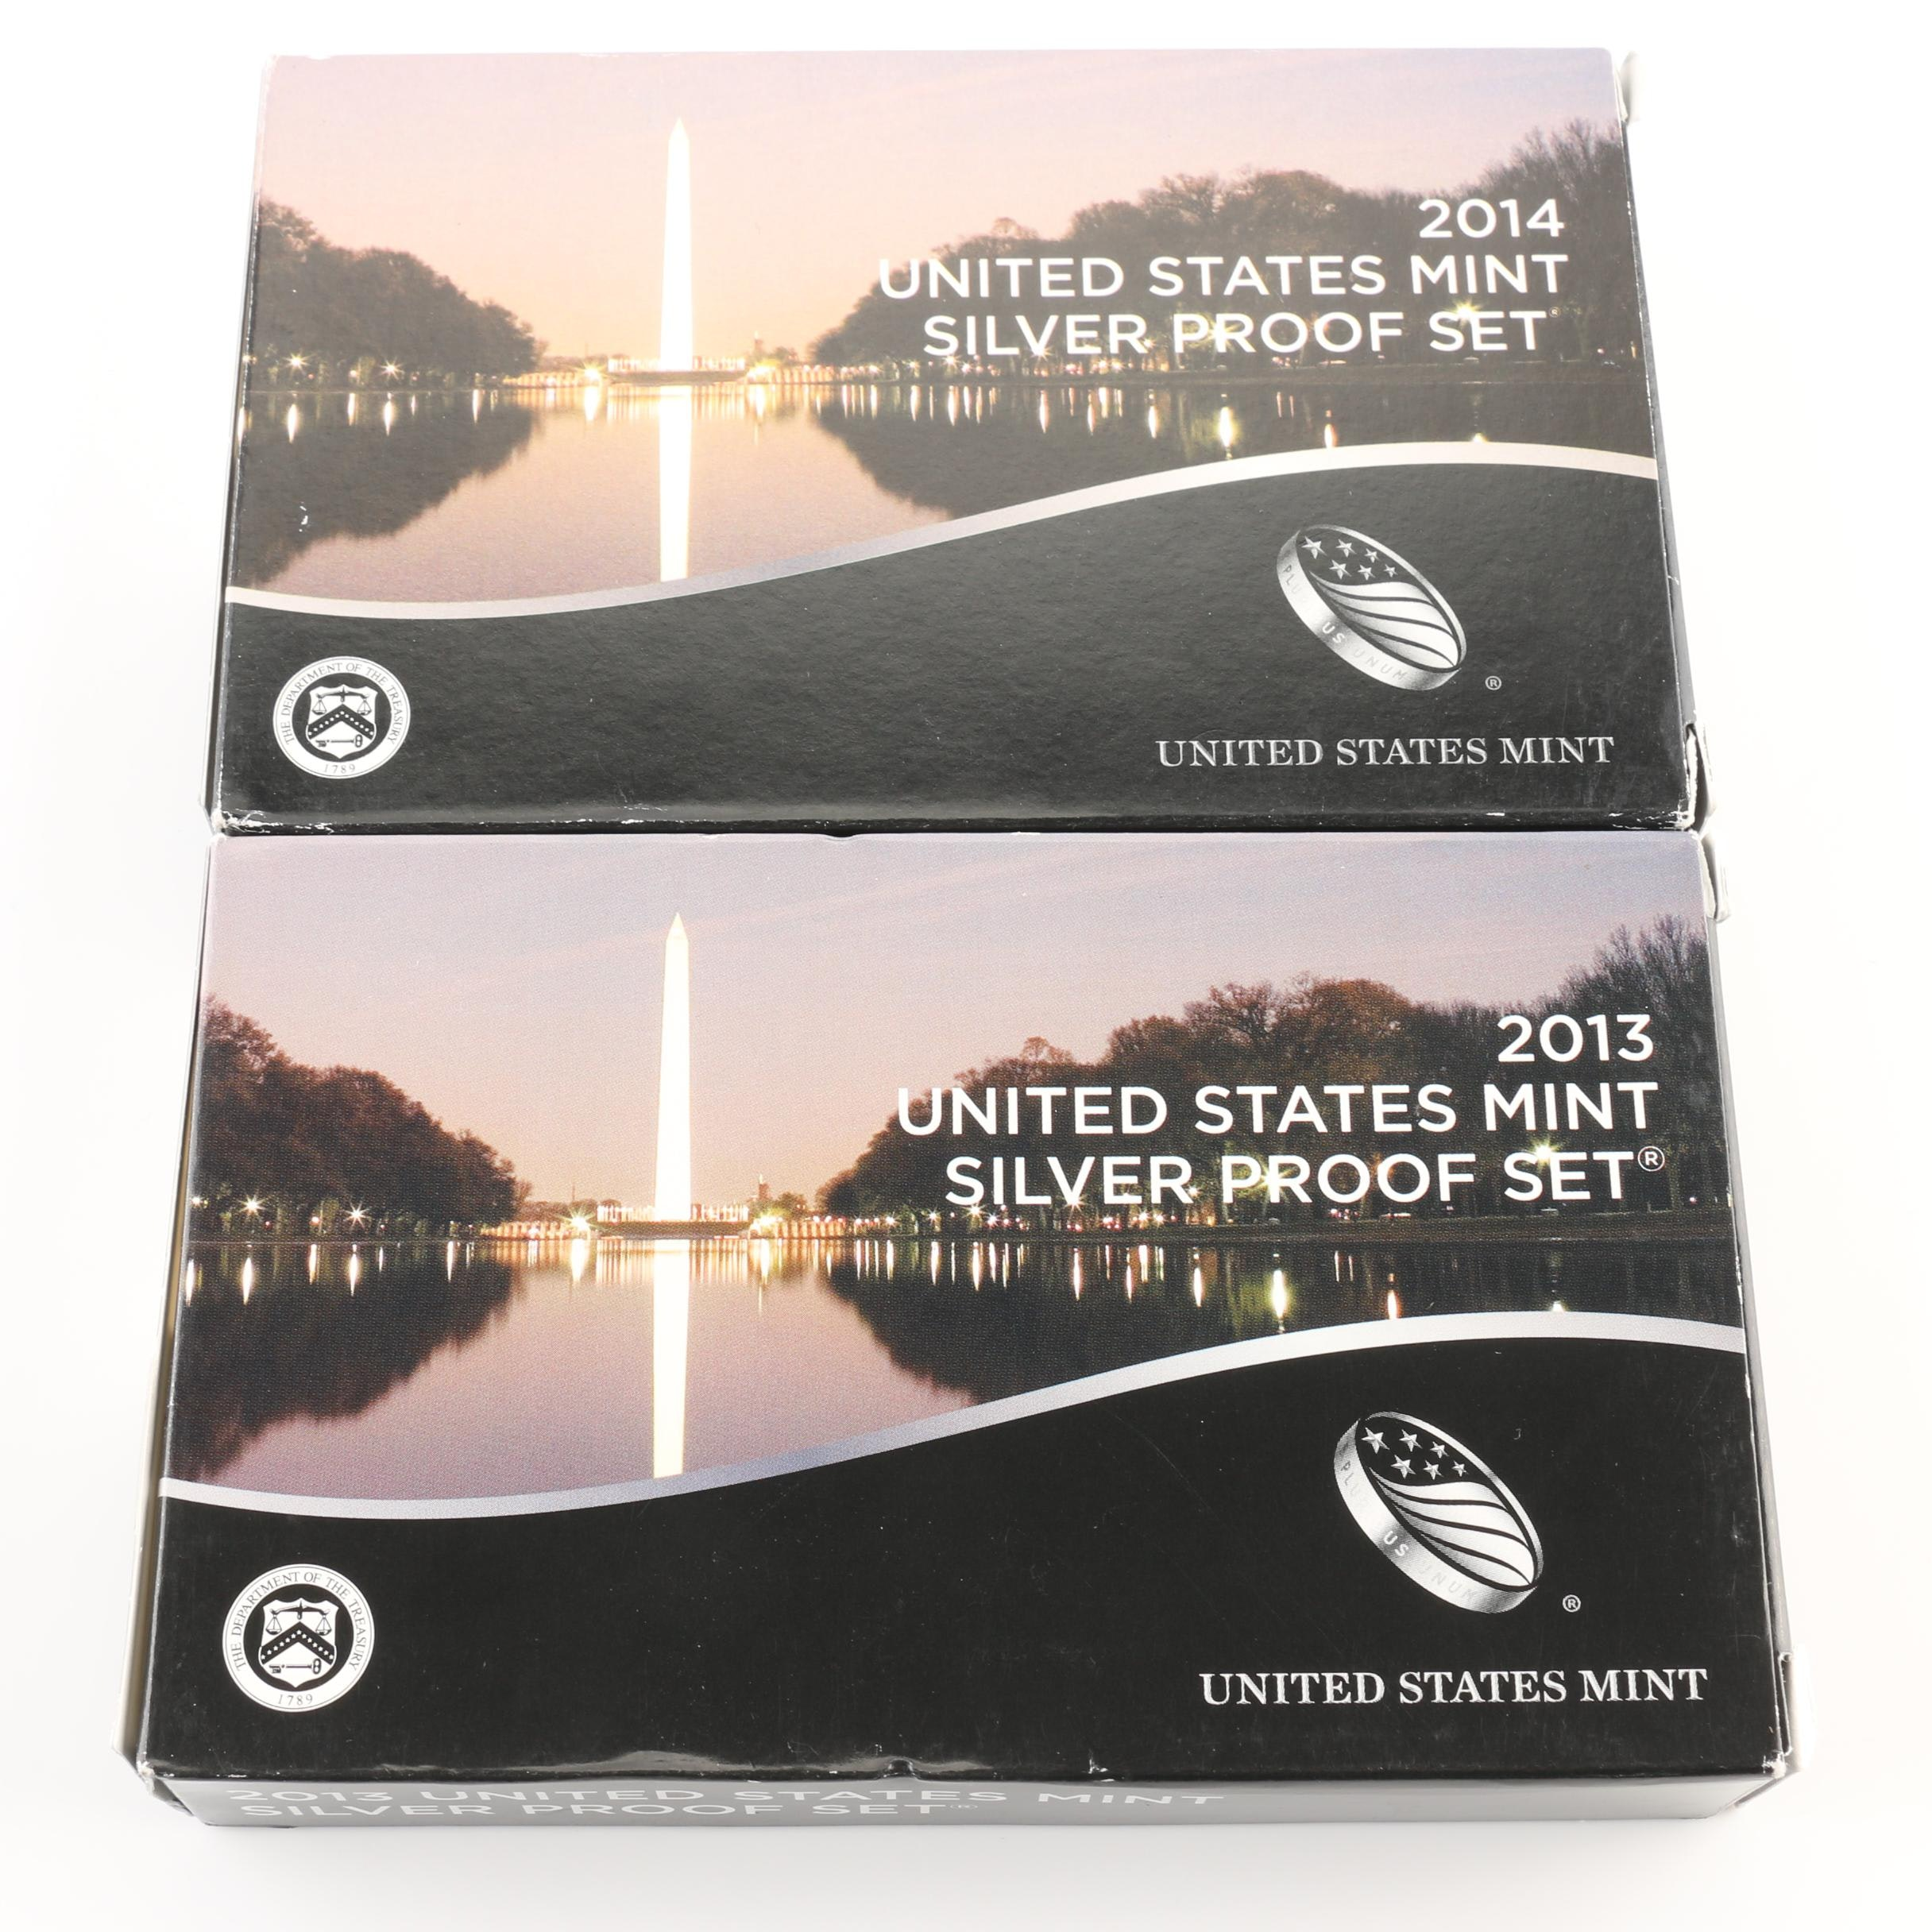 2013 and 2014 United States Mint Silver Proof Sets